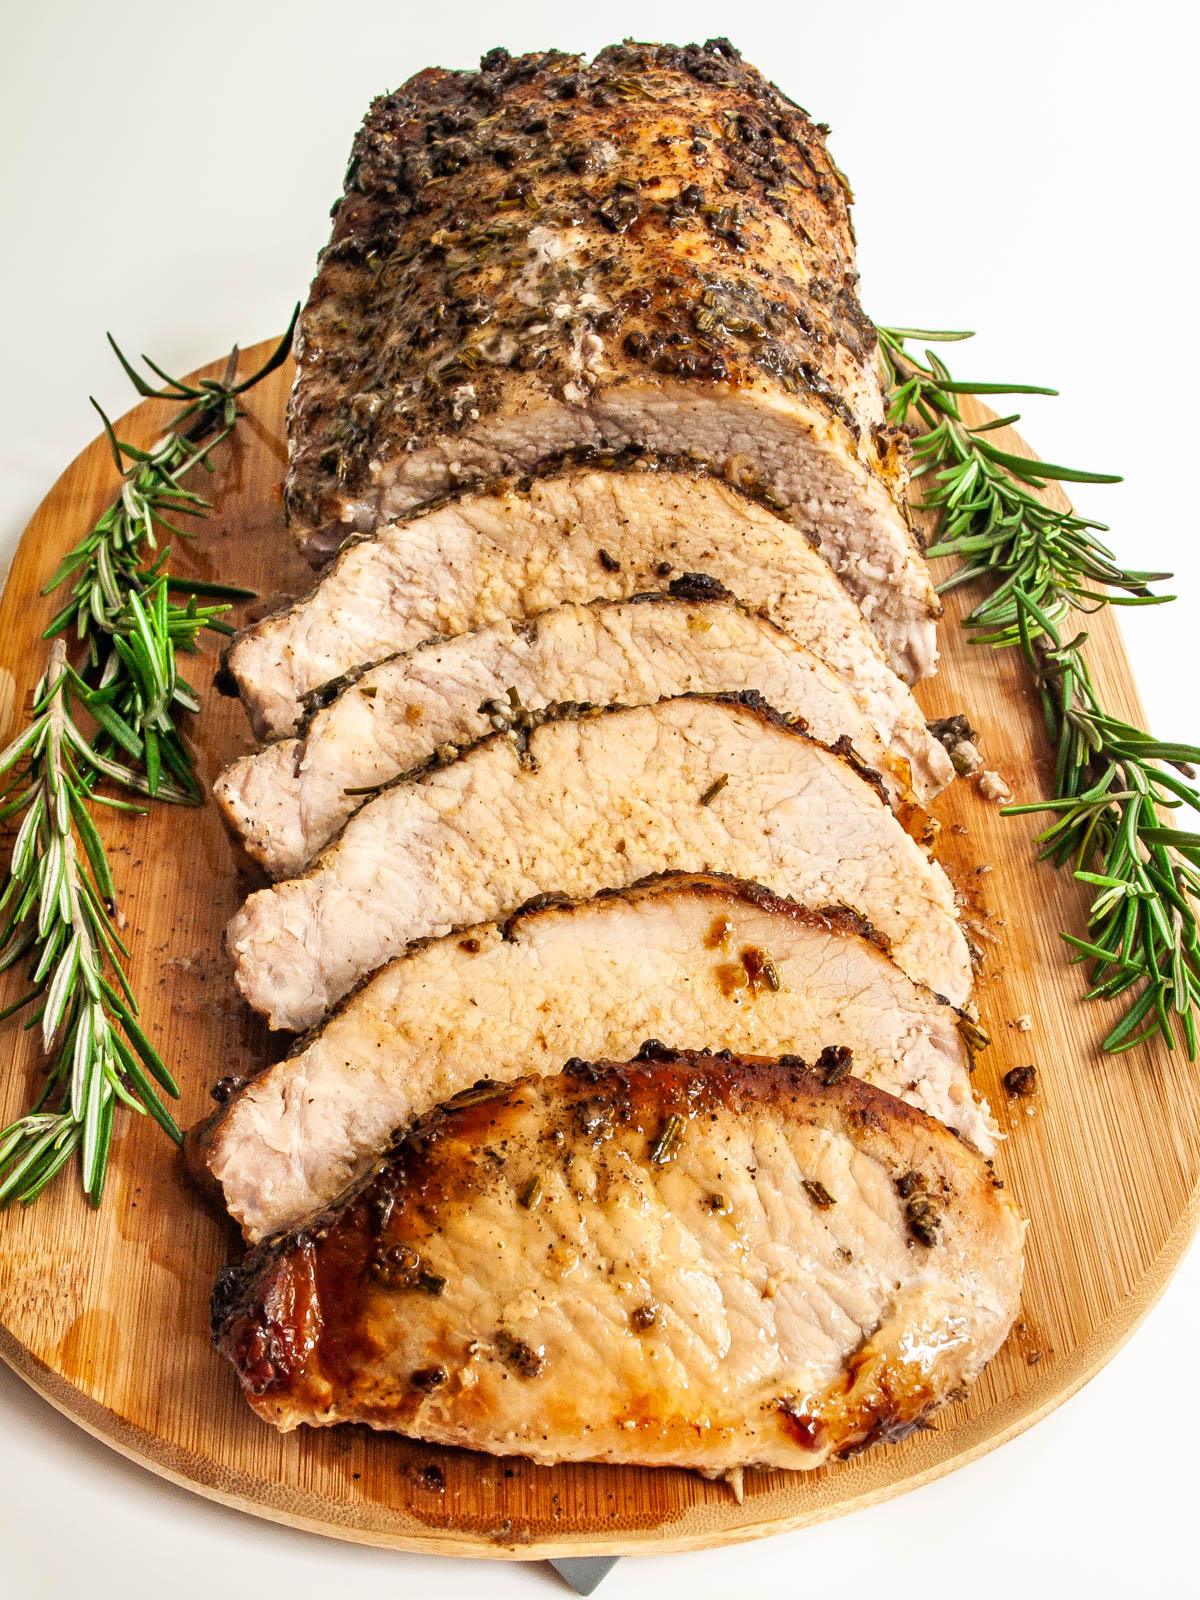 Pork Loin Roast on a cutting board